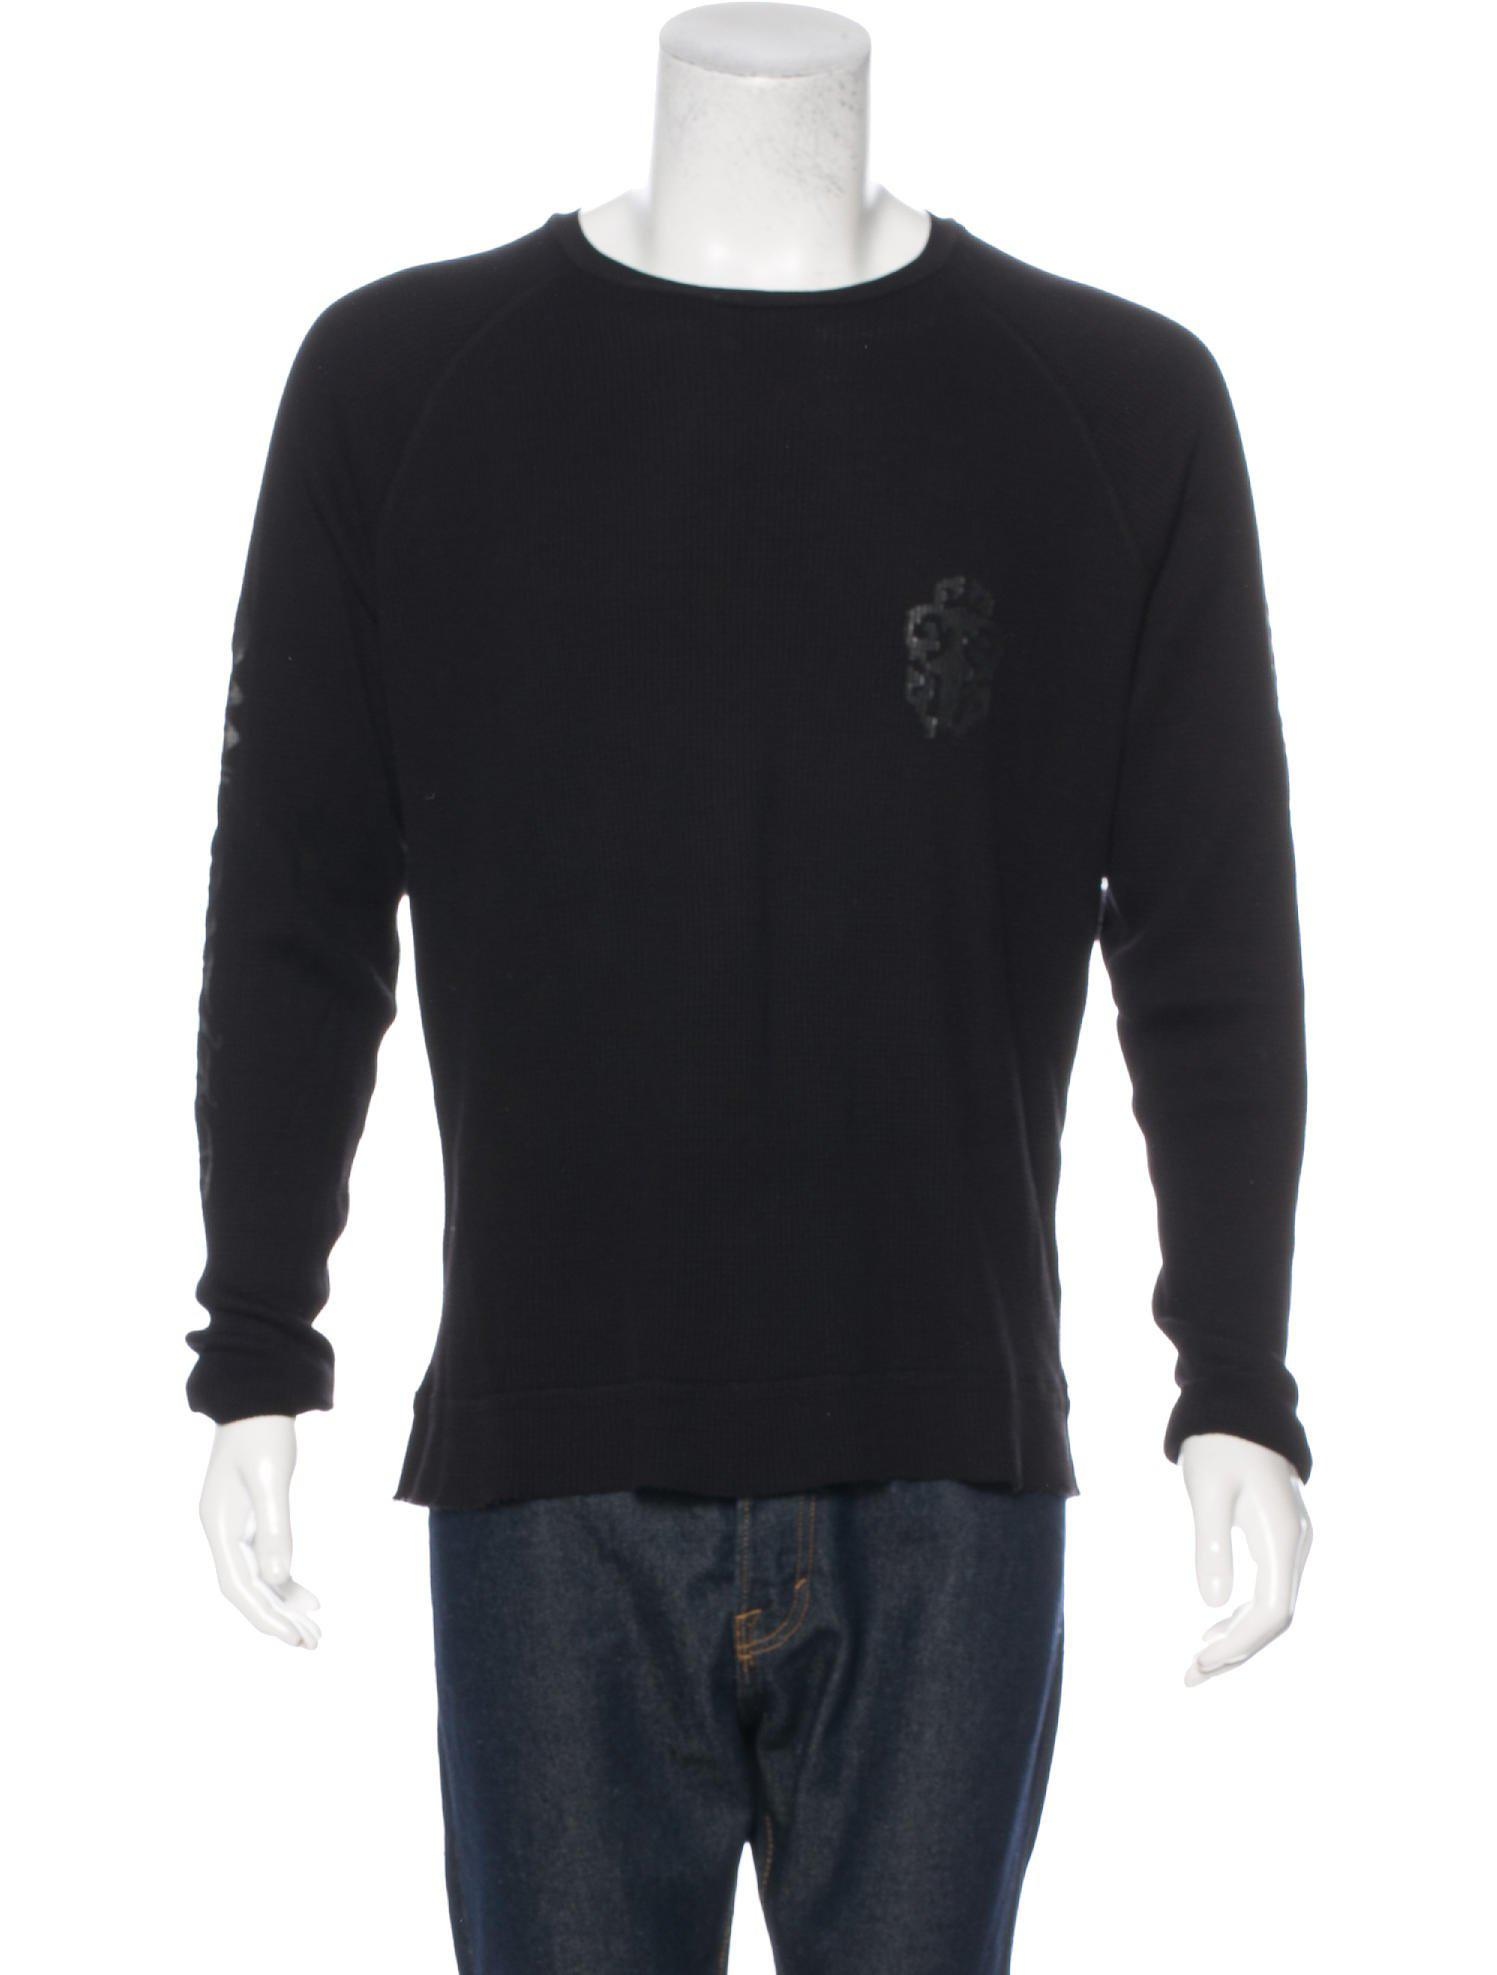 f1797b0ffe72 Lyst - Chrome Hearts Long Sleeve Thermal T-shirt in Black for Men